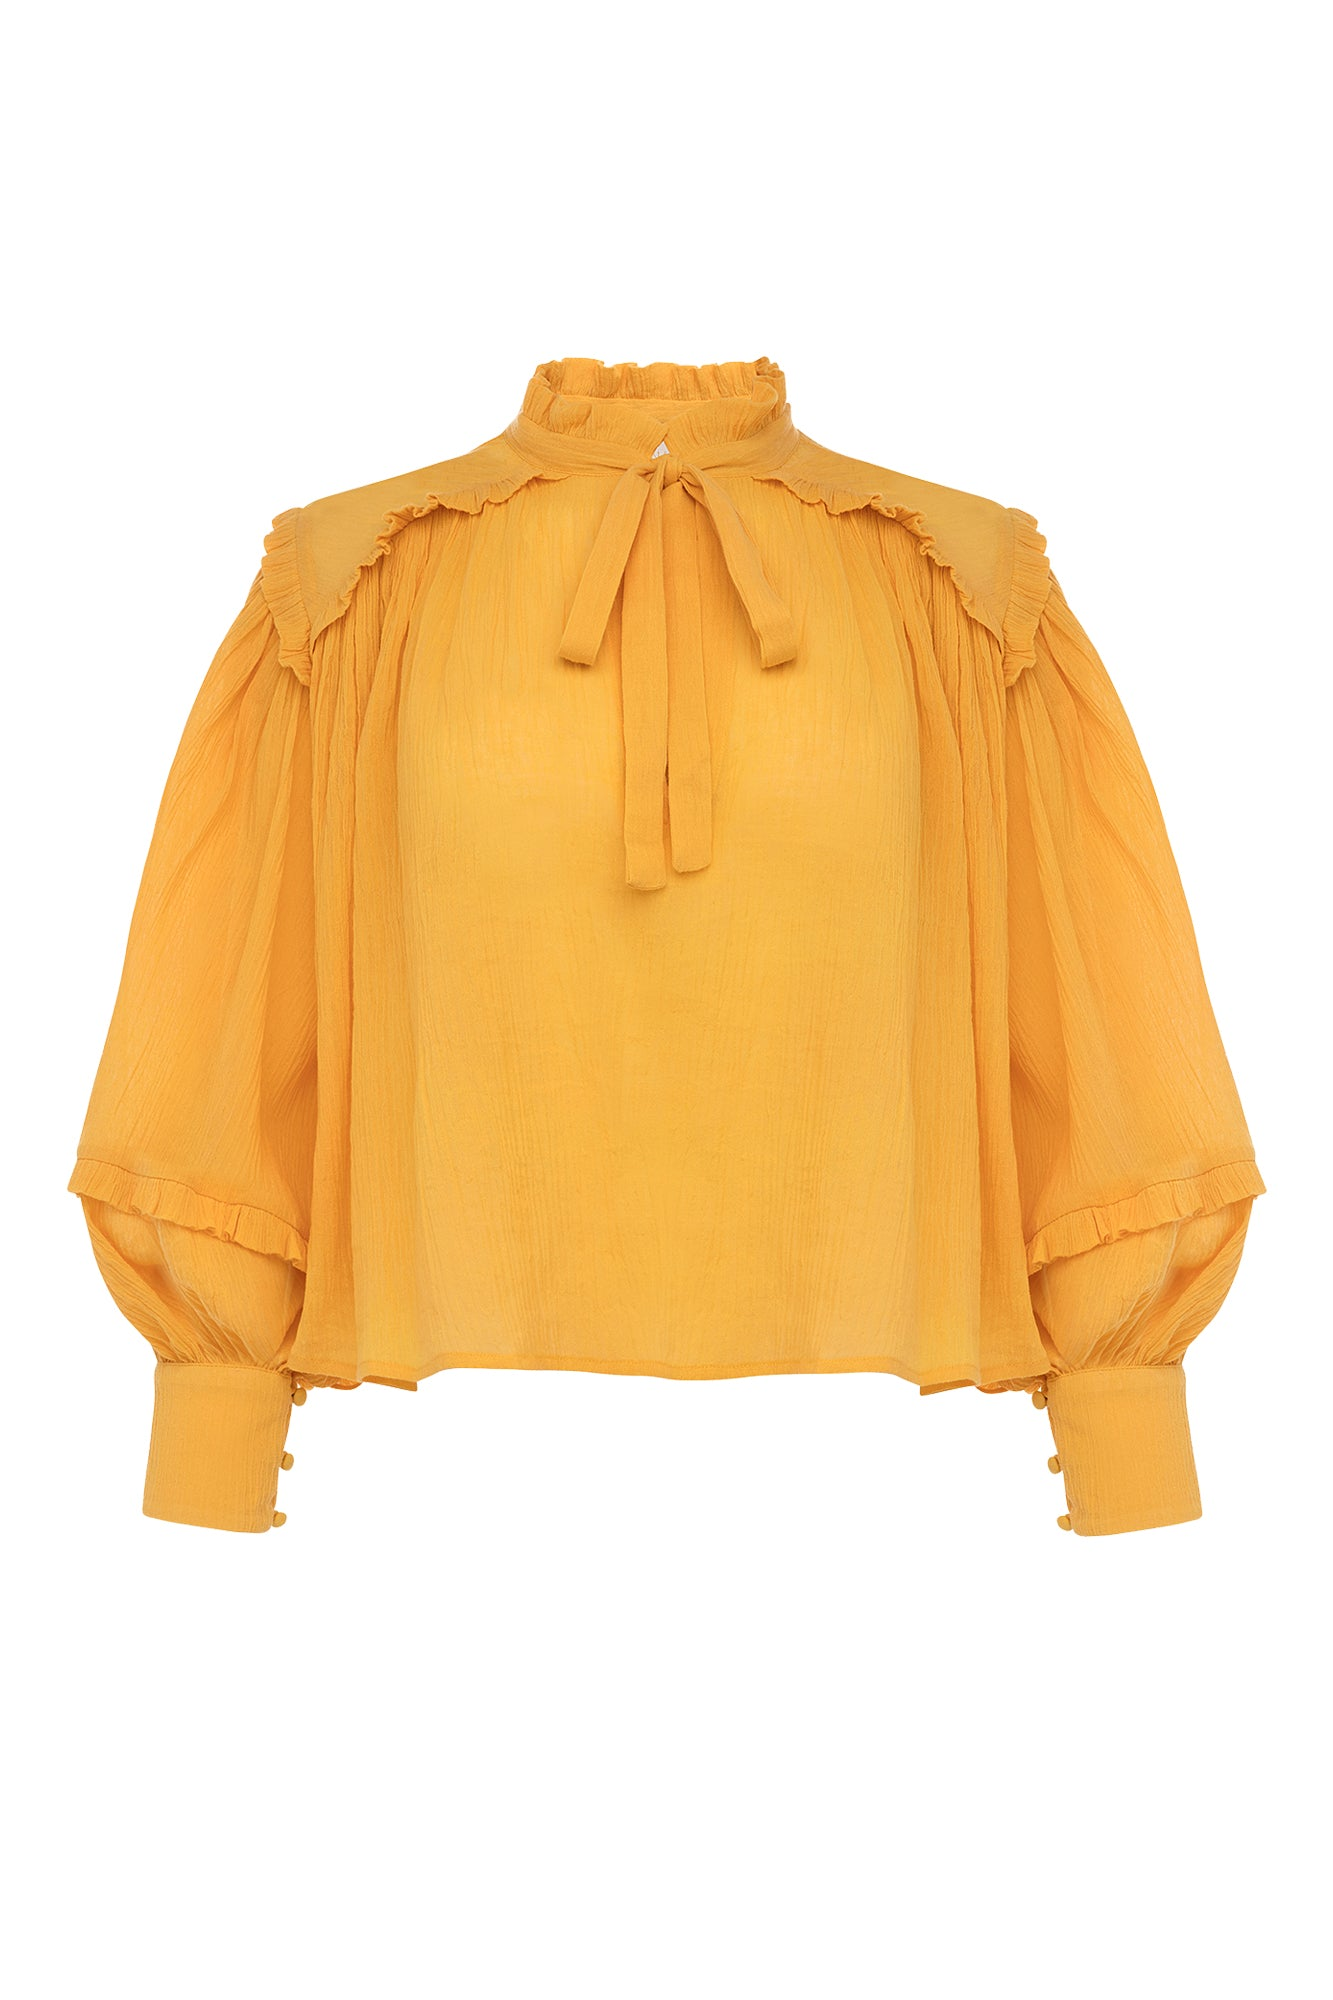 Carolina K Fiore Blouse Yellow